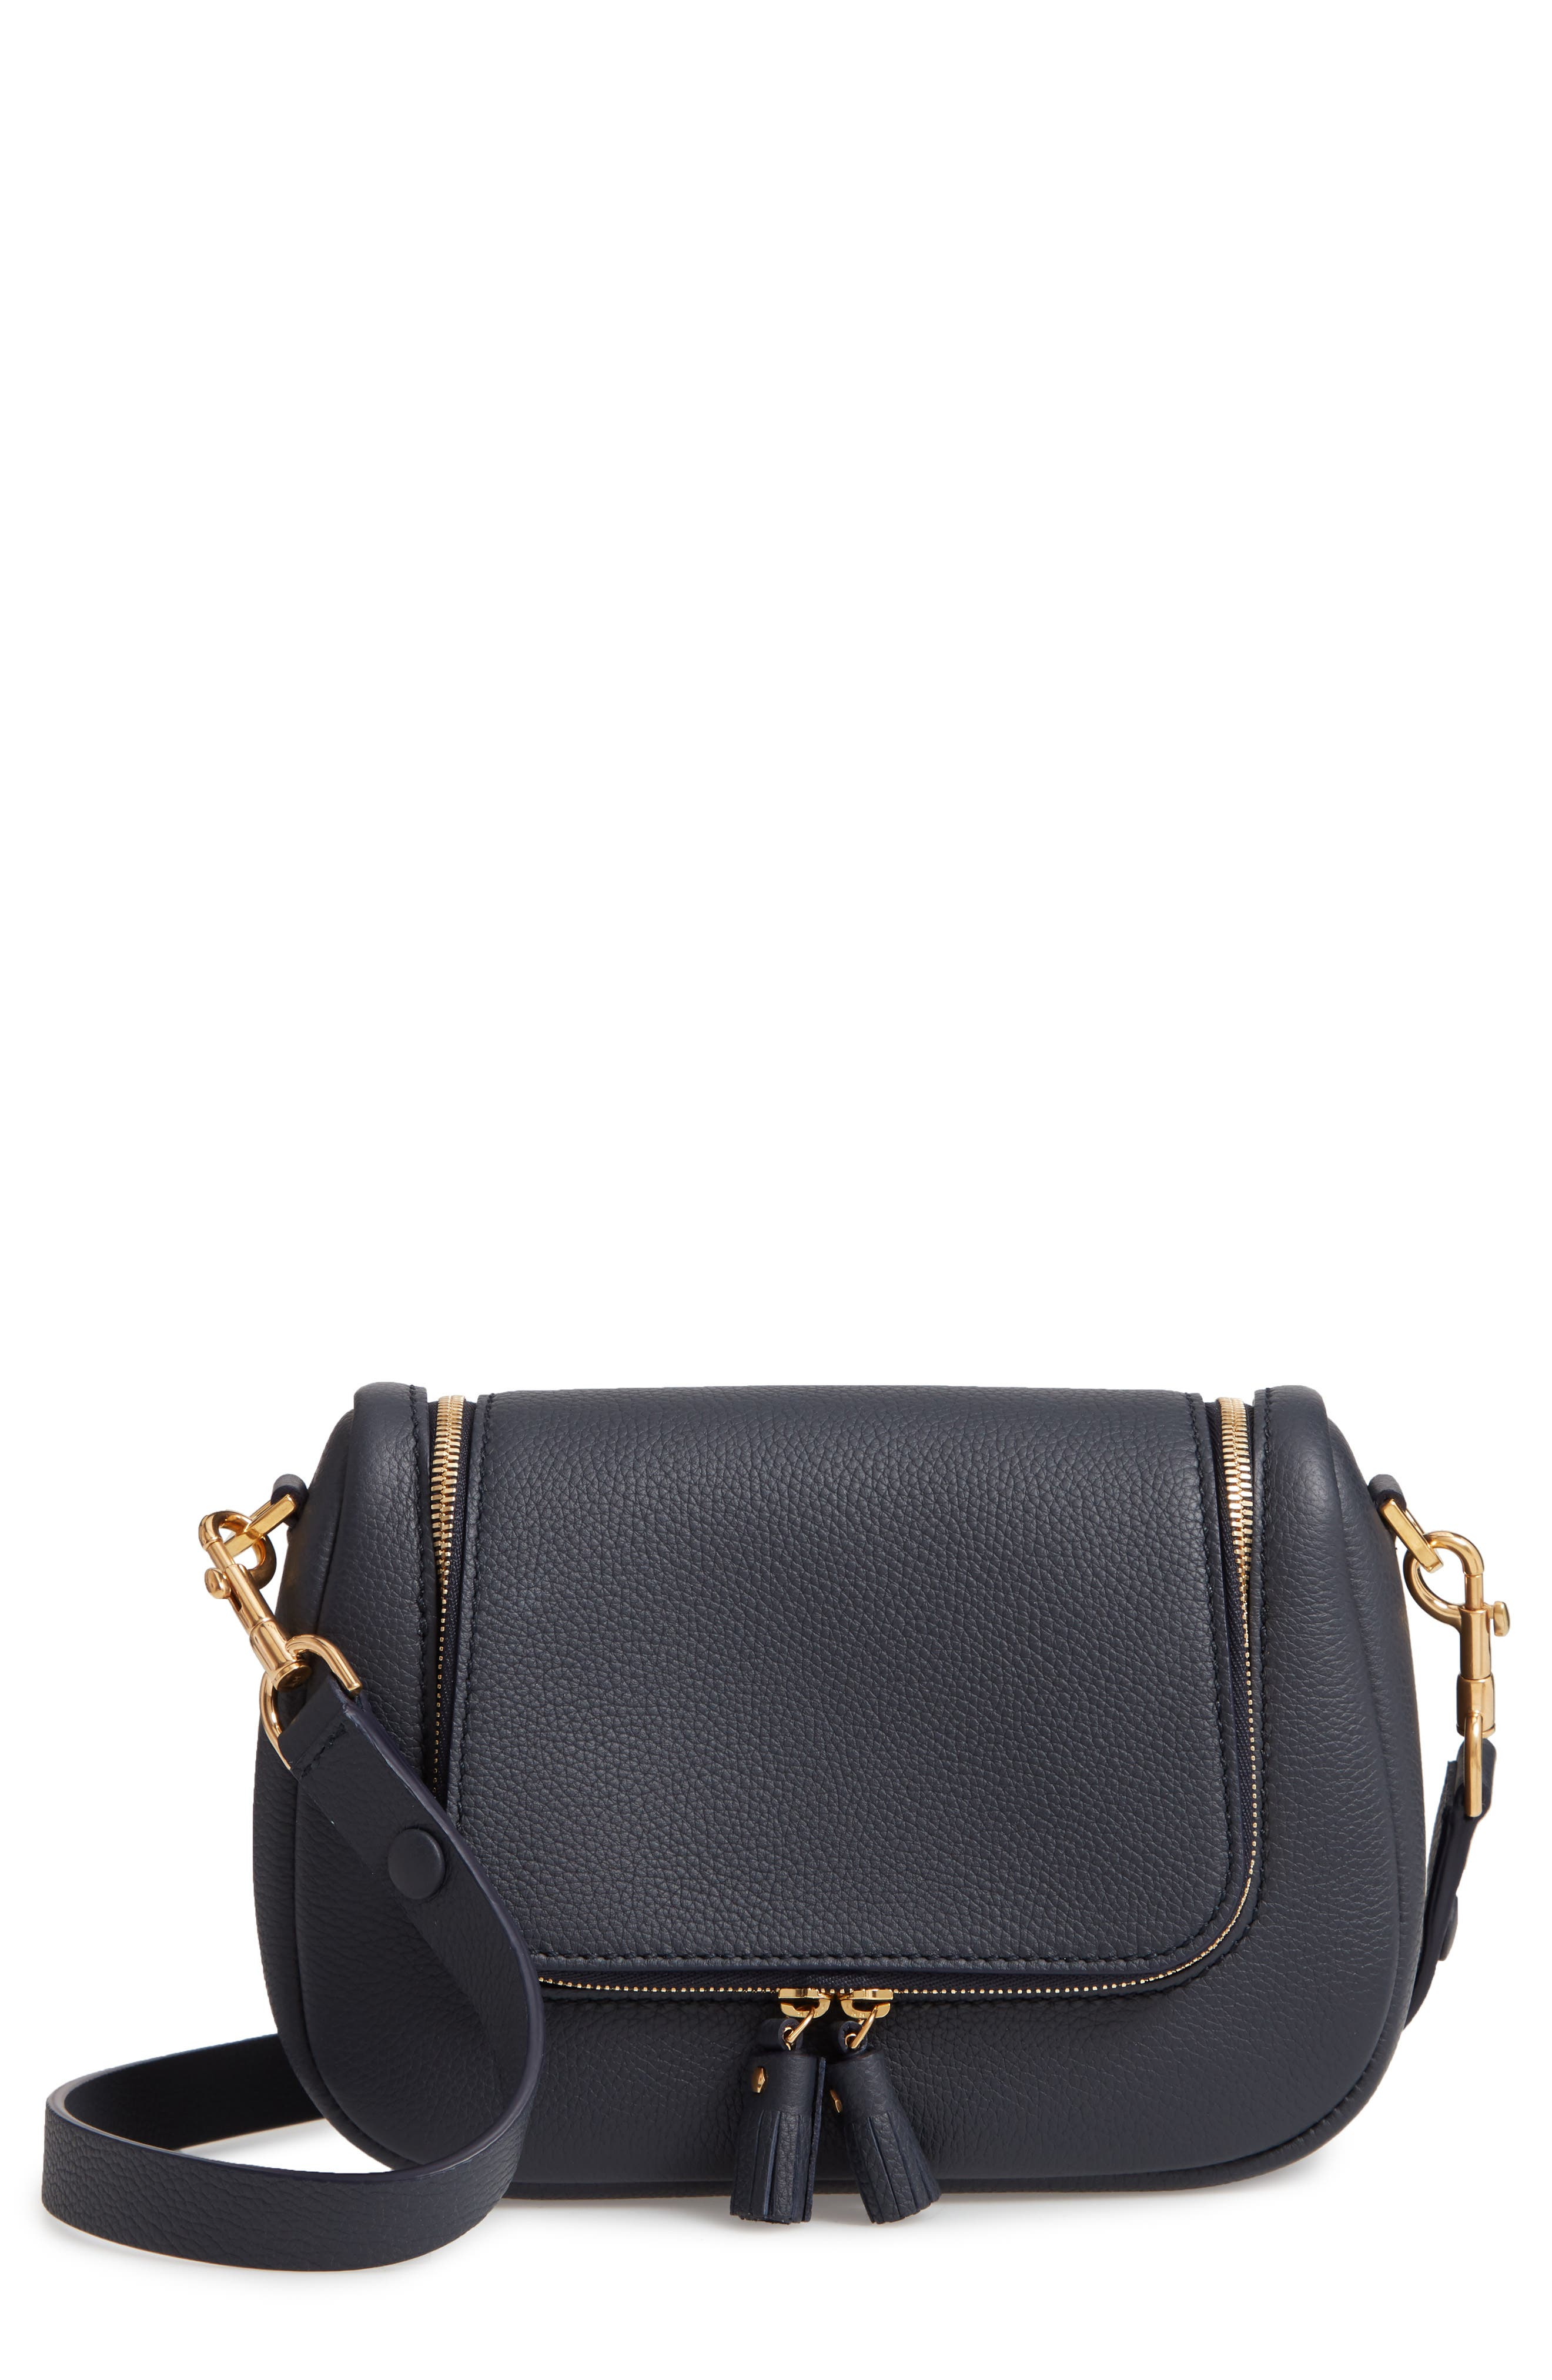 Small Vere Leather Crossbody Satchel - Blue in Marine